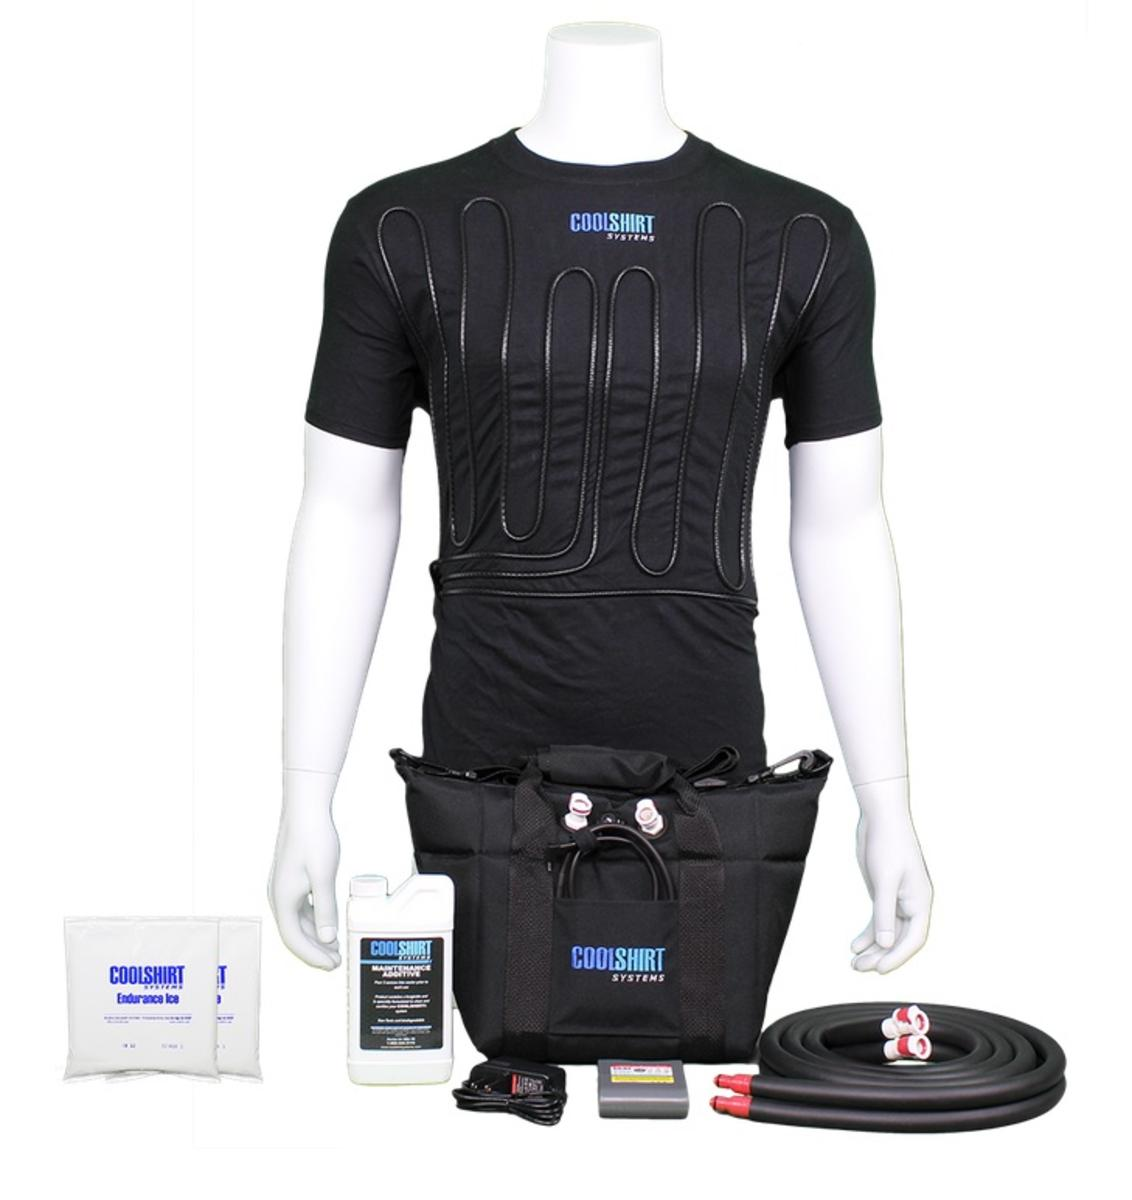 Cool Shirt Systems >> Cool Shirt Mobilecool 2 Coolshirt Complete Kit The Warming Store